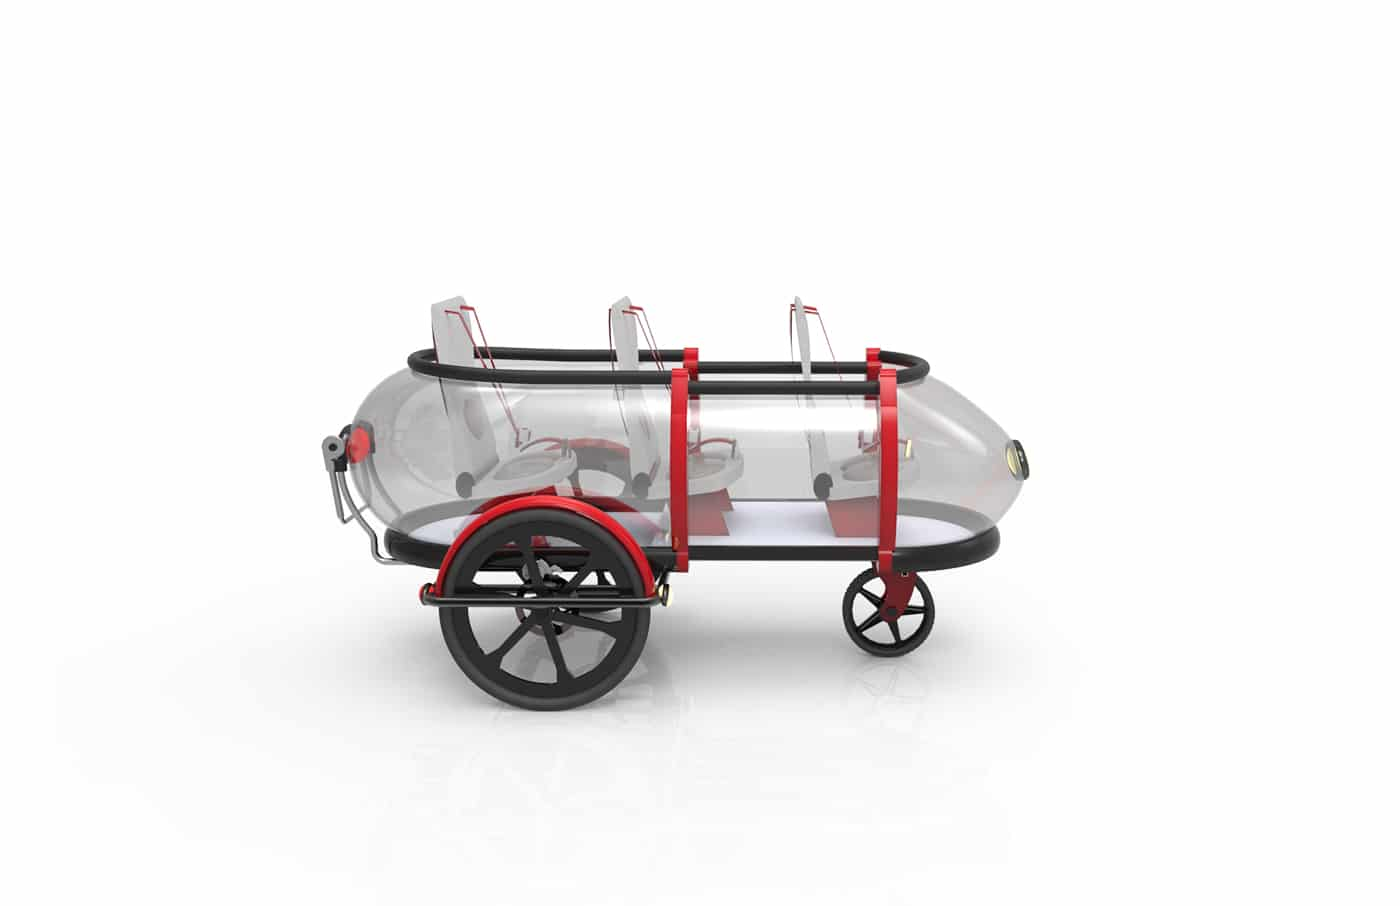 SideBuddy-by-Jordi-Hans-Design-Bycycle-Trailer,-Cargo-Bike,-Side-Trailer,-Kid-Bike-trailer,-by-Jonkoping-Sweden-Design-Consuting-3